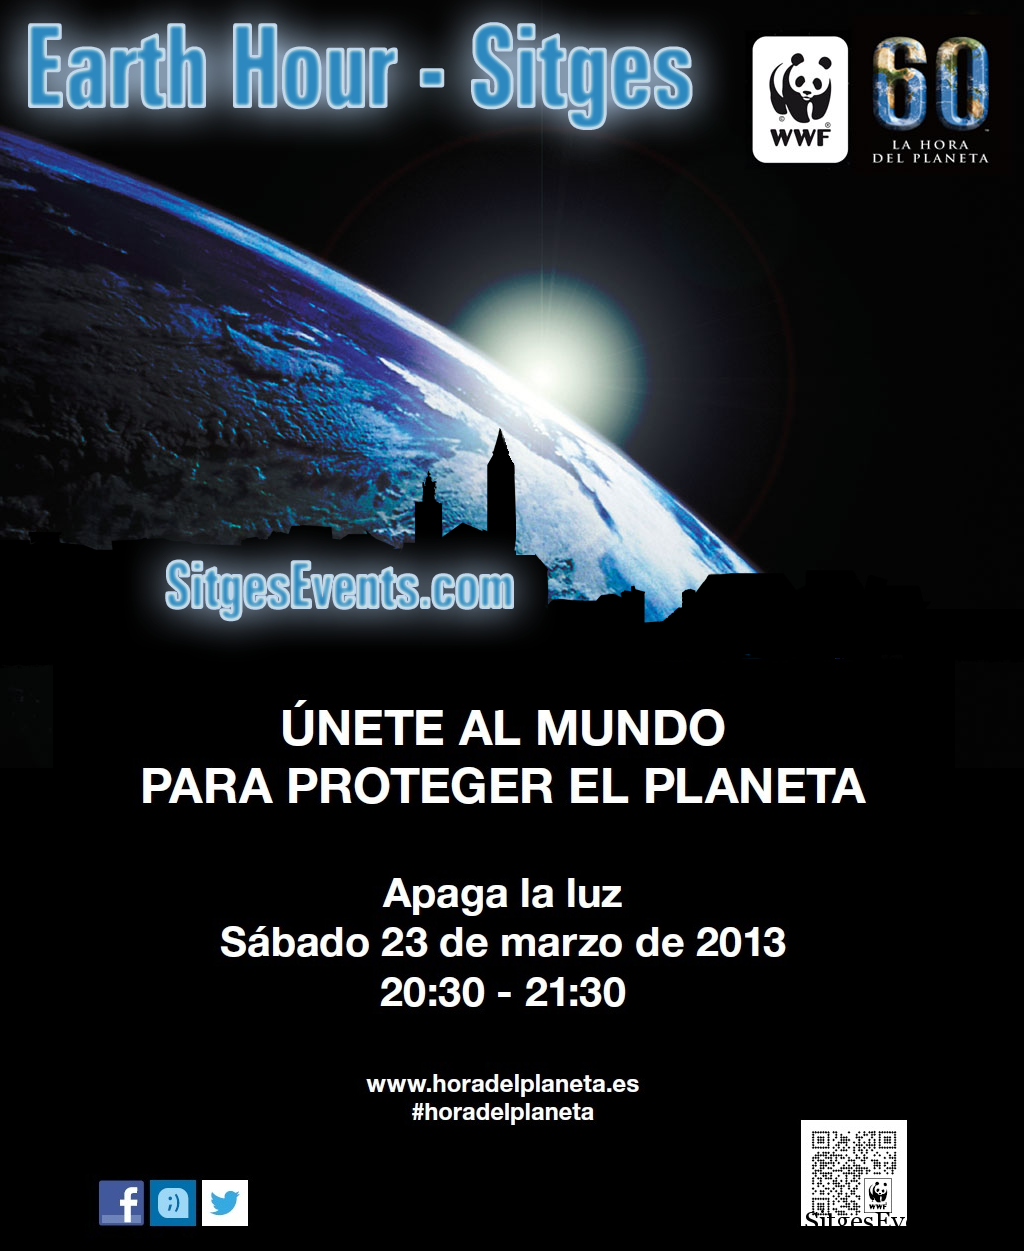 L'Hora del Planeta – Earth Hour in Sitges 2013